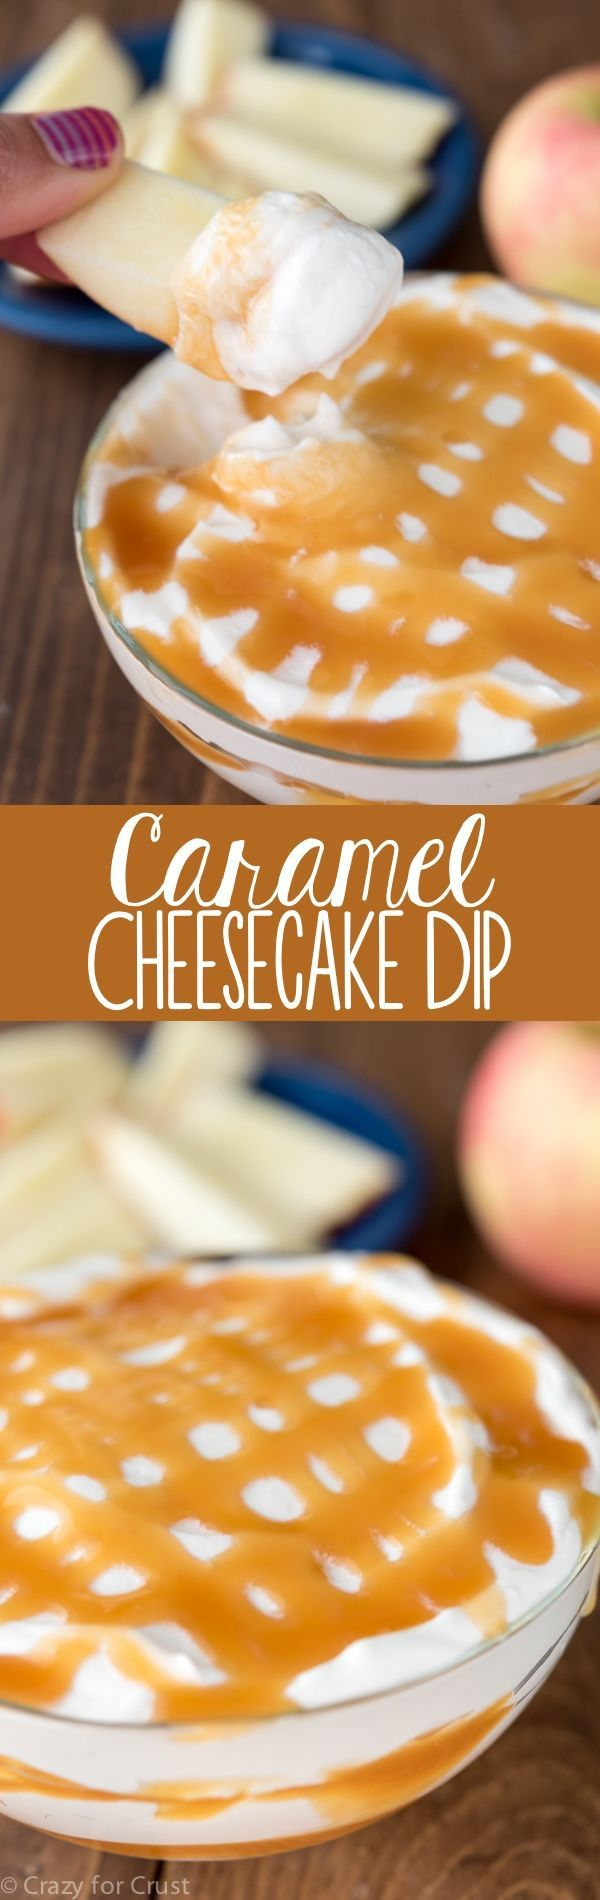 This easy Caramel Cheesecake Dip is the perfect fall recipe! Use it to dip apples or as a party dip!